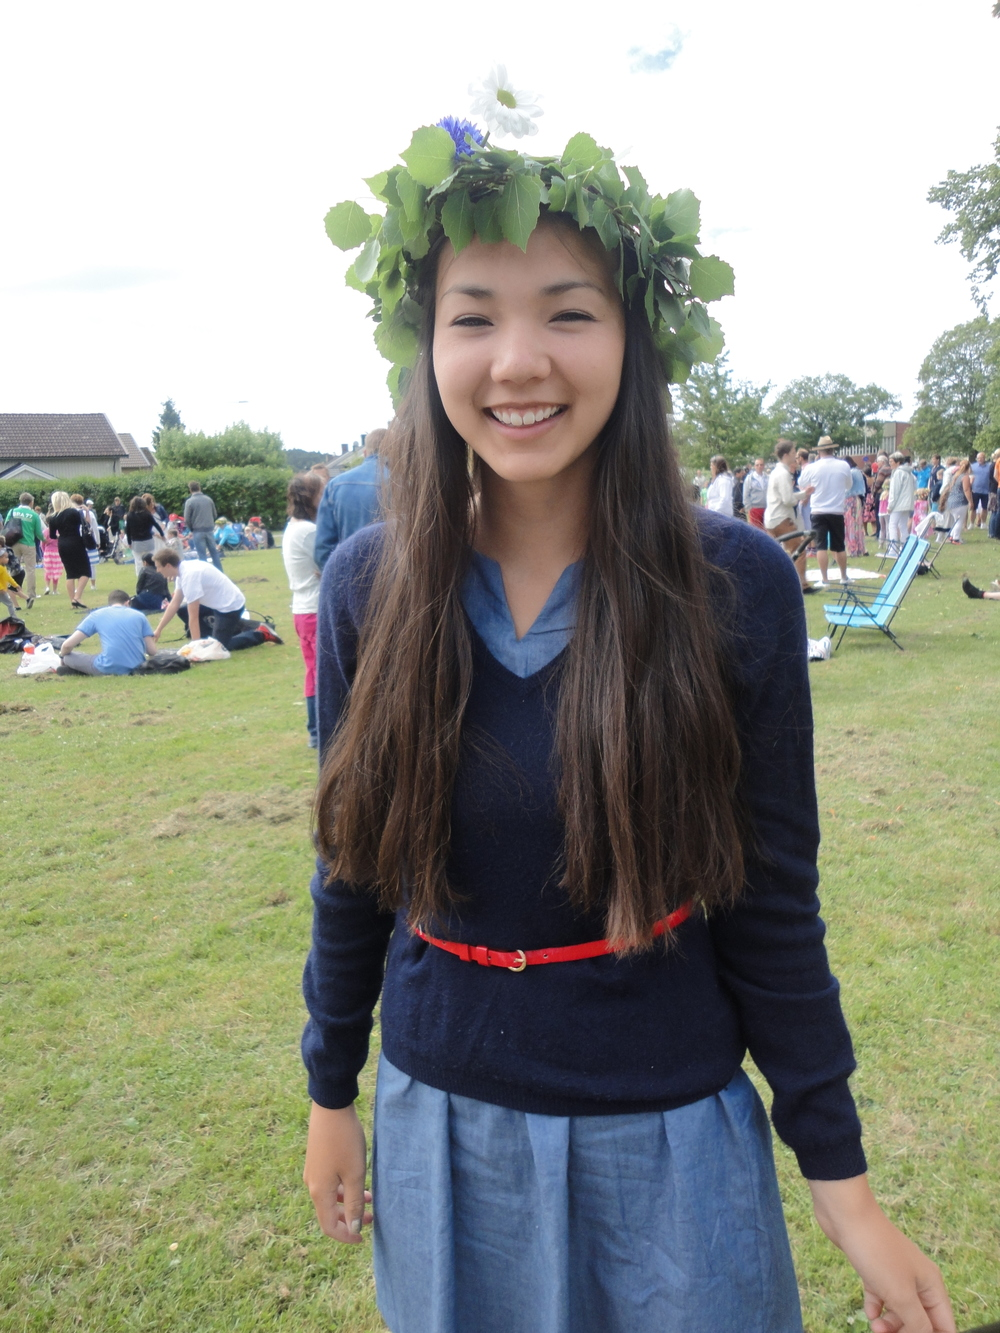 Famous Swedish Midsommar (Midsummer) celebrations always include these flower/wreath crowns, handmade with fresh picked wild flowers.  Participating in the traditions of the culture is one of the greatest privileges of being an exchange student.